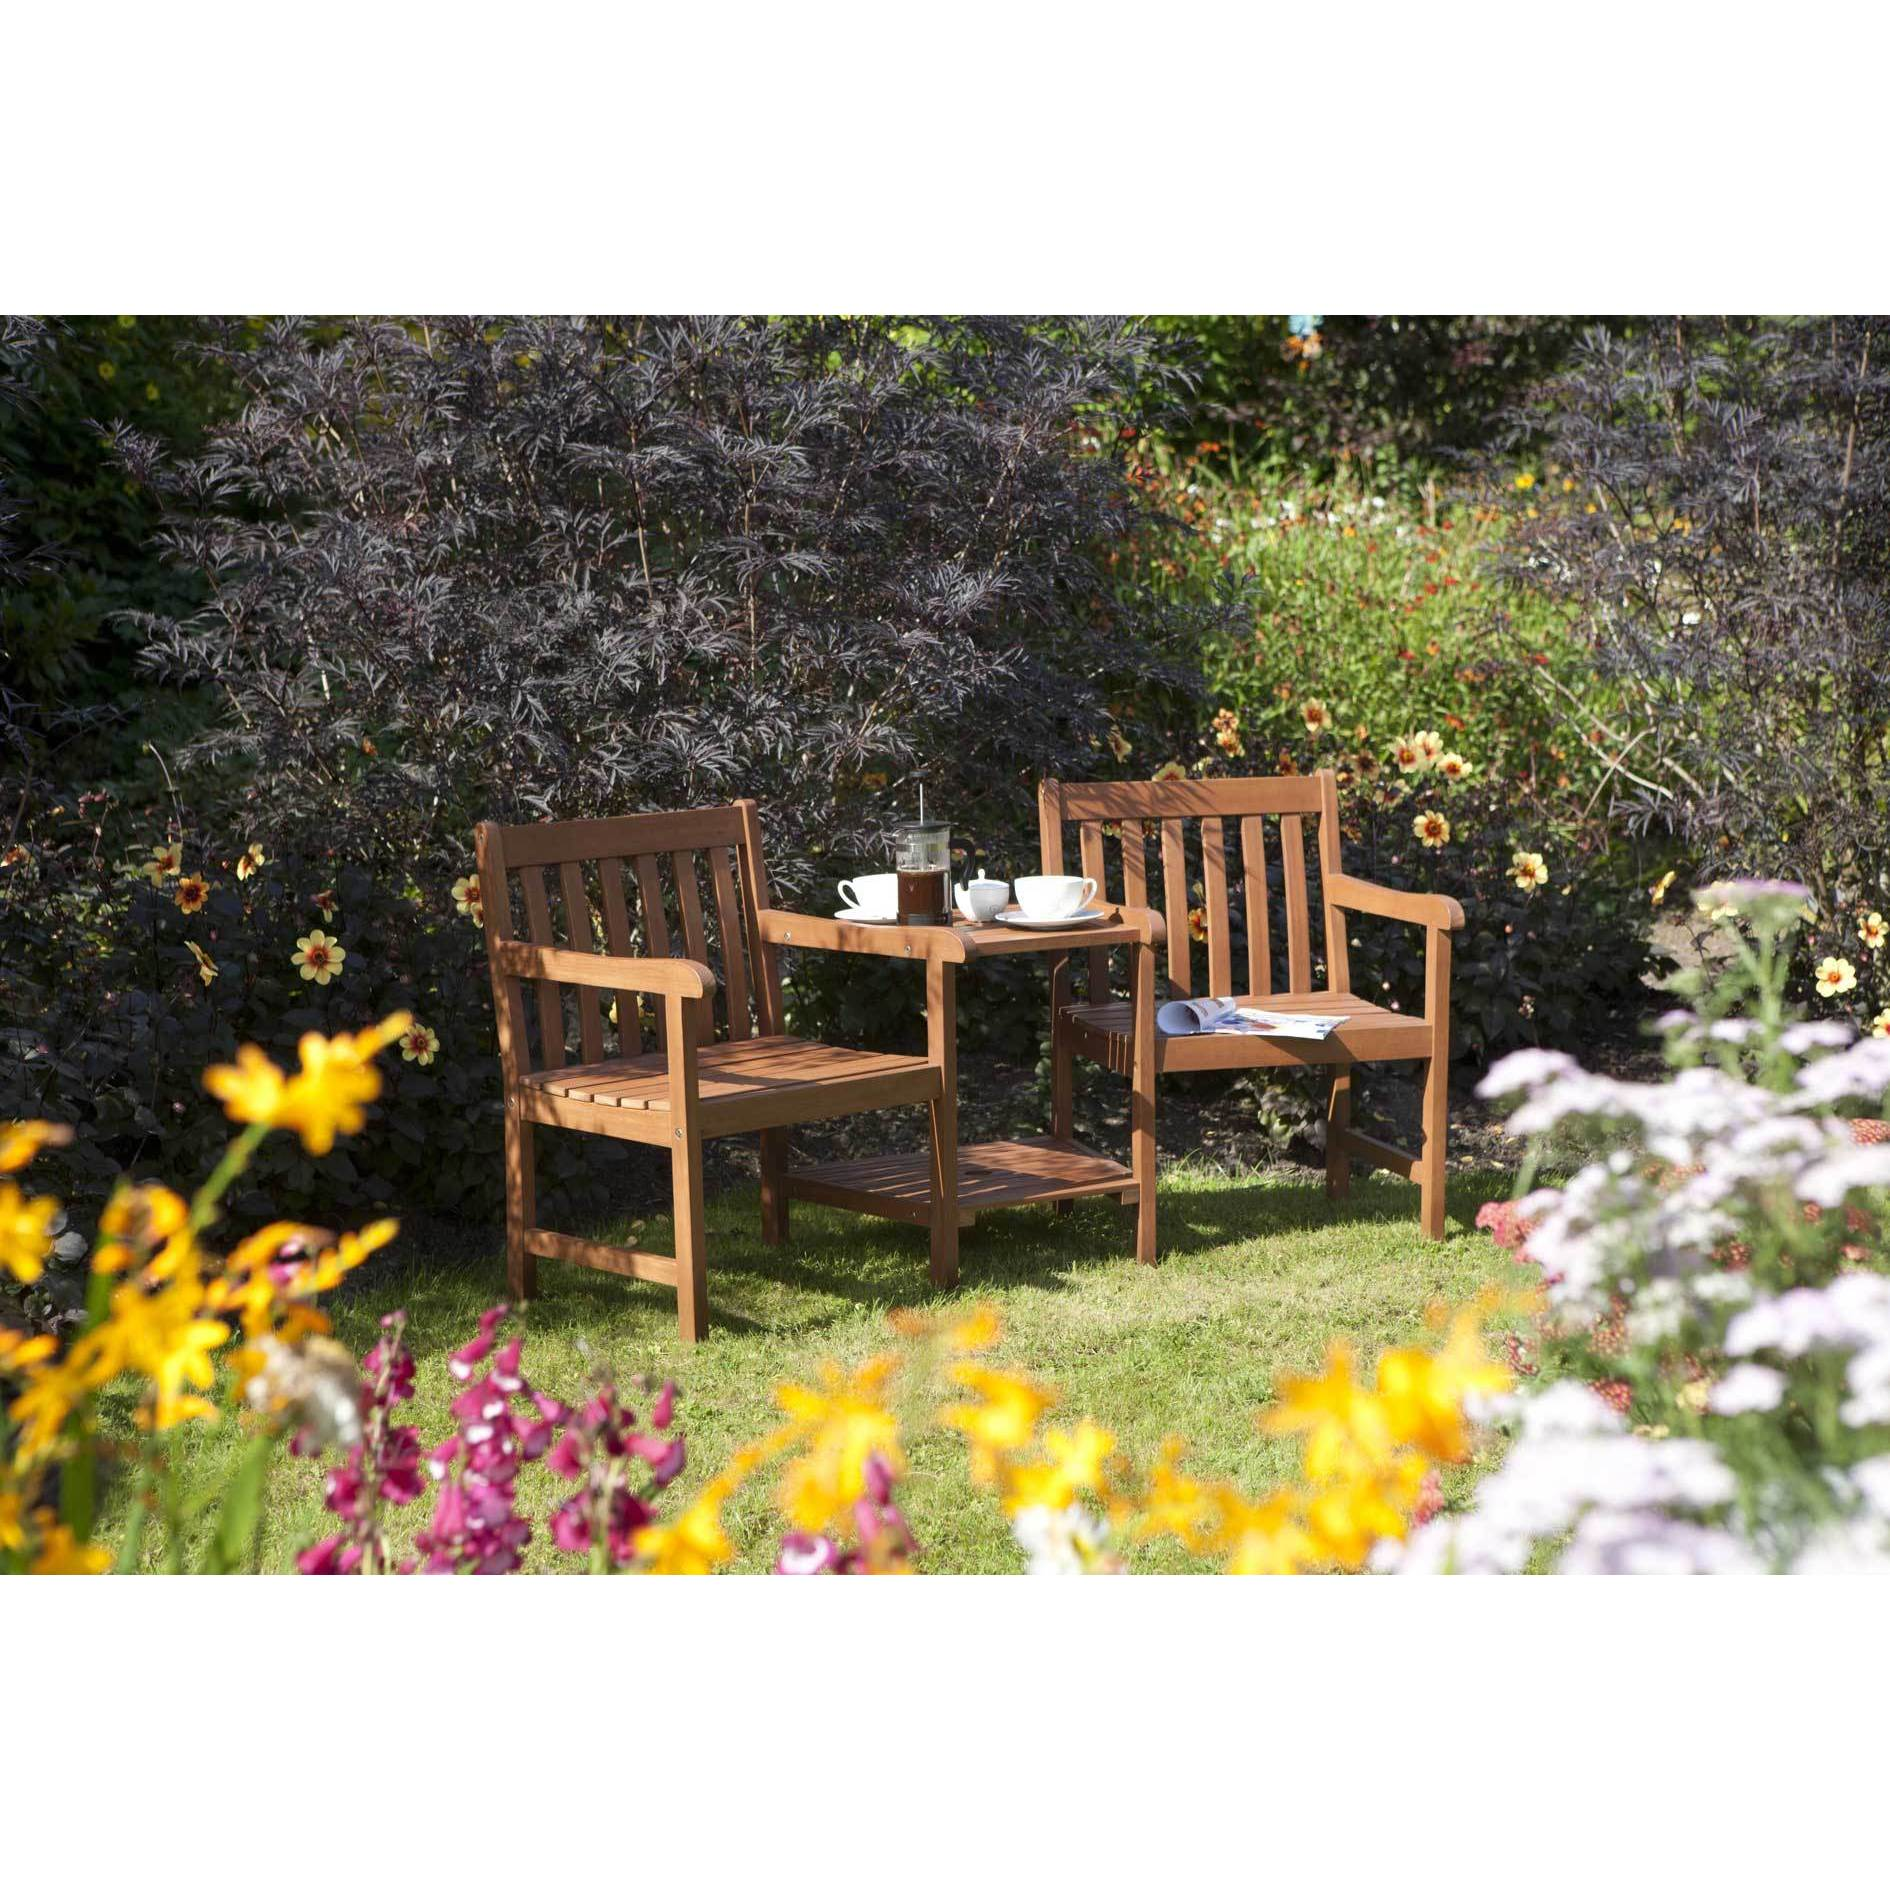 Bosmere English Garden Wood Companion Chair with Table (E...